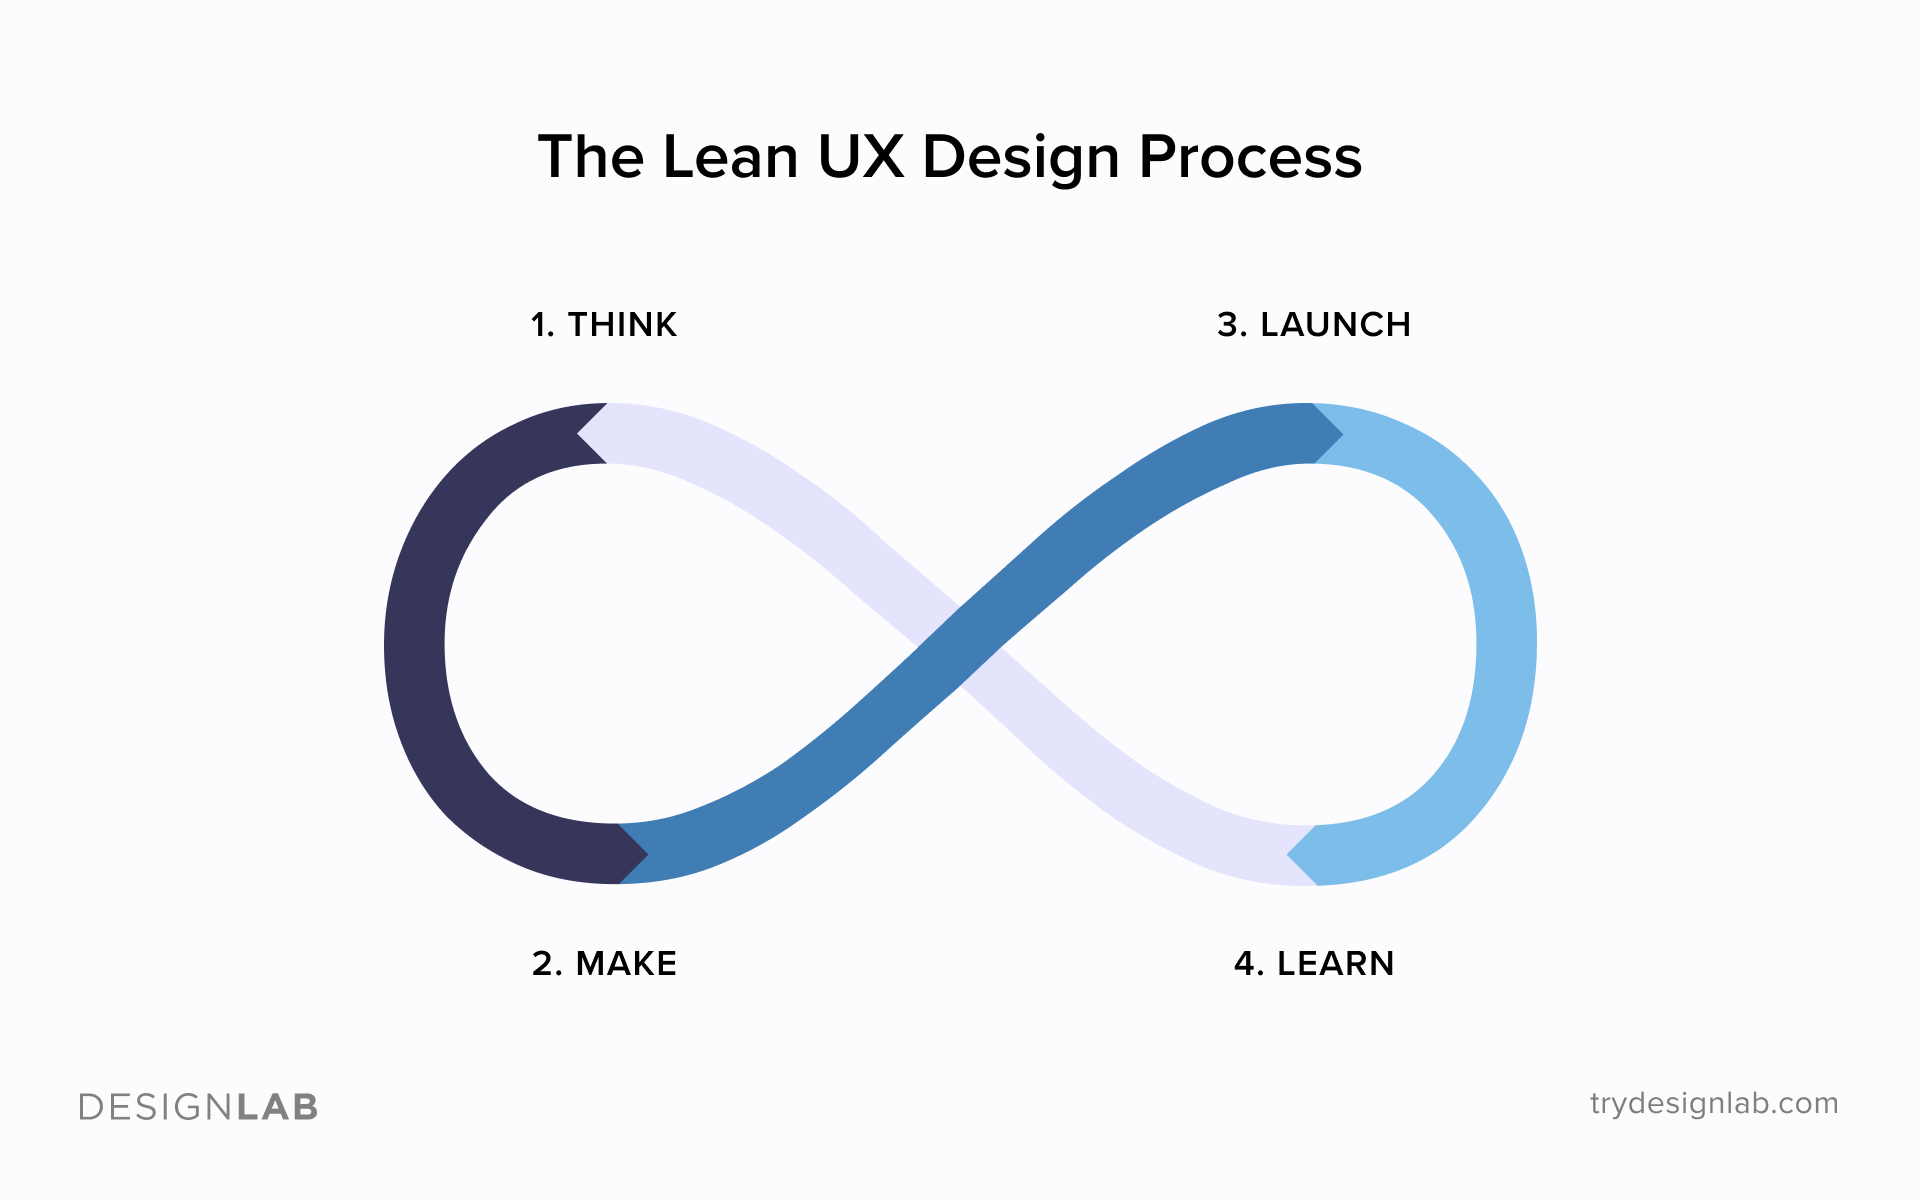 The Lean UX Design Process